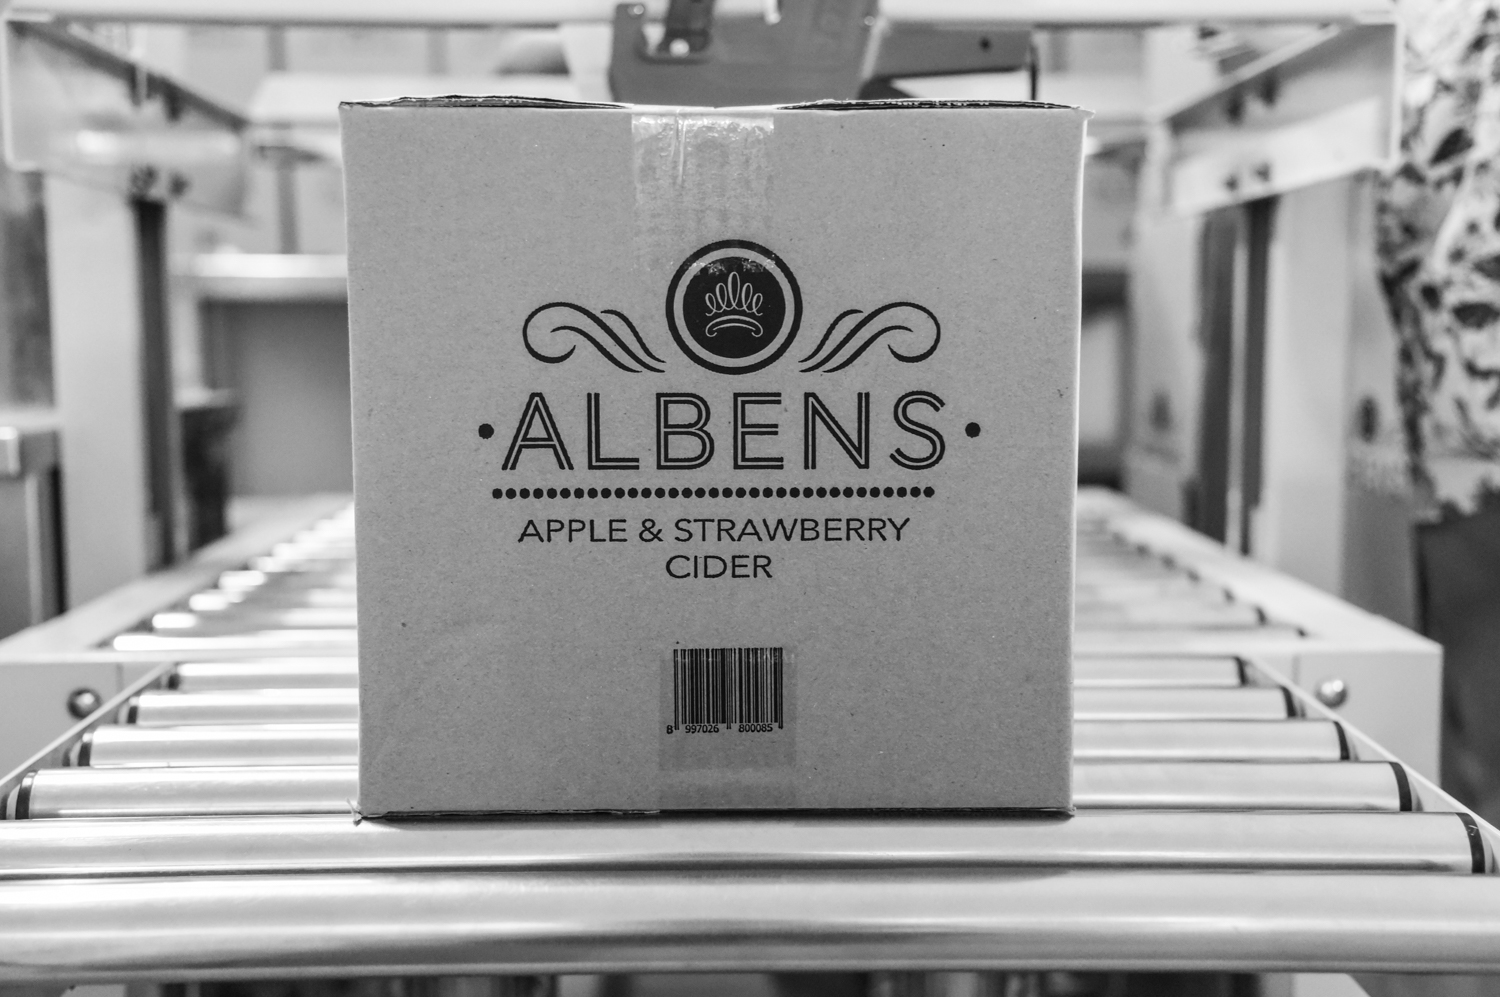 albens cider, factory, fresh, Bali, Indonesia, cidery